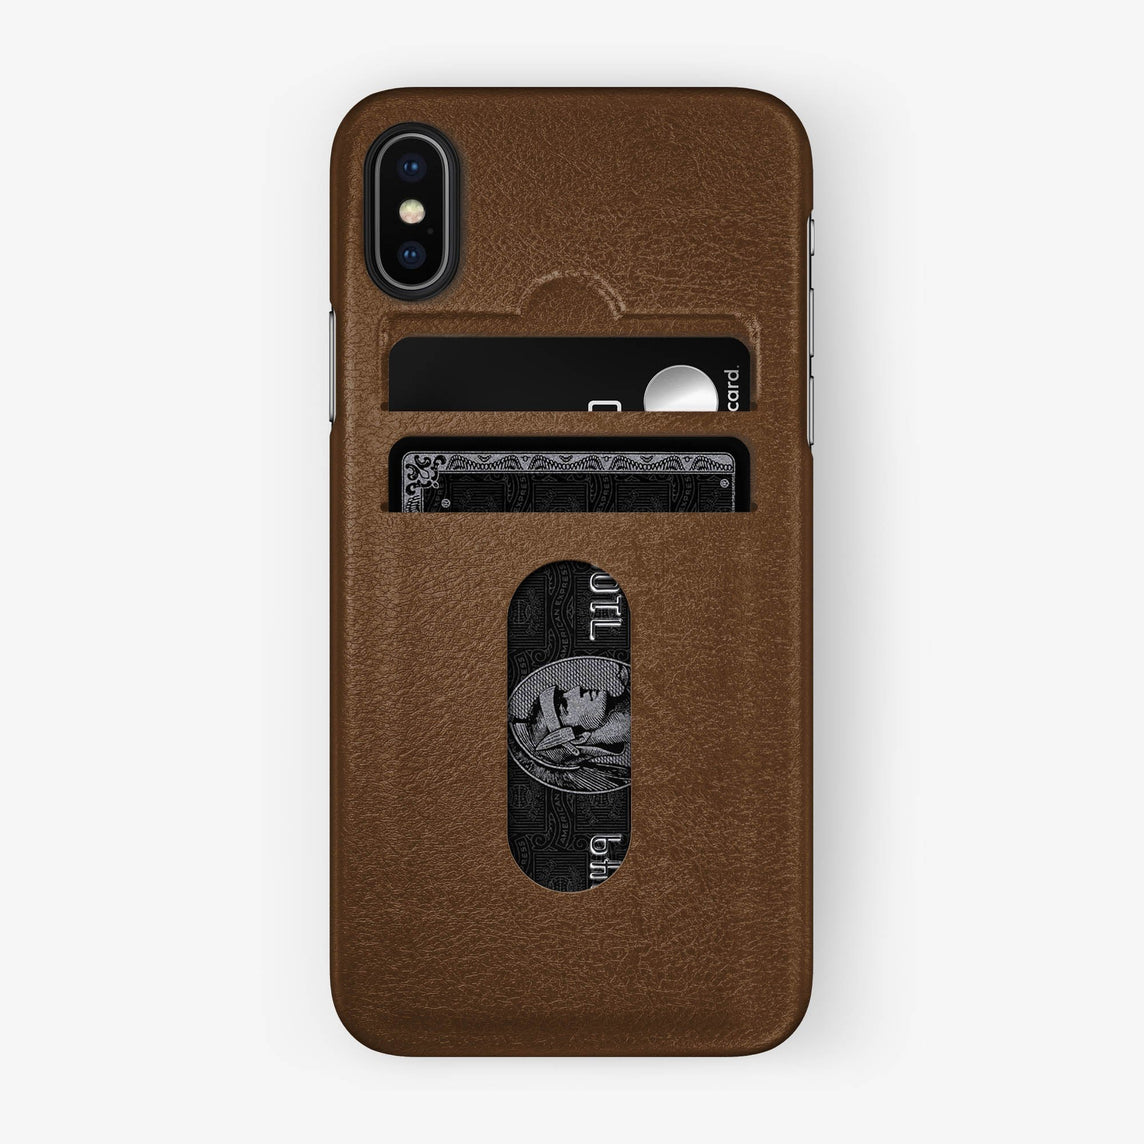 Brown Calfskin iPhone Card Holder Case for iPhone X finishing black - Hadoro Luxury Cases